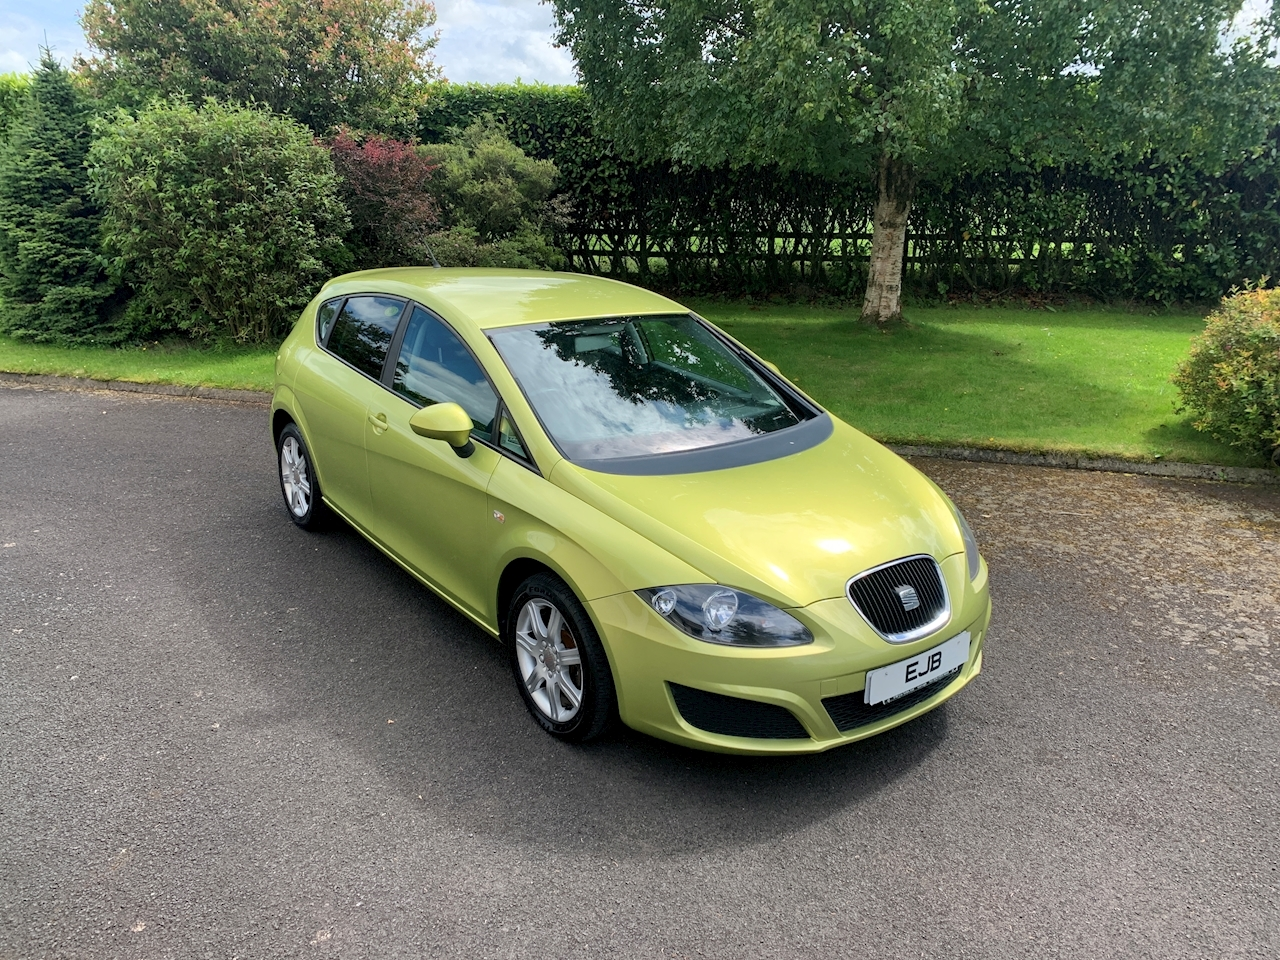 Seat Leon Tdi S Hatchback 1.9 Manual Diesel